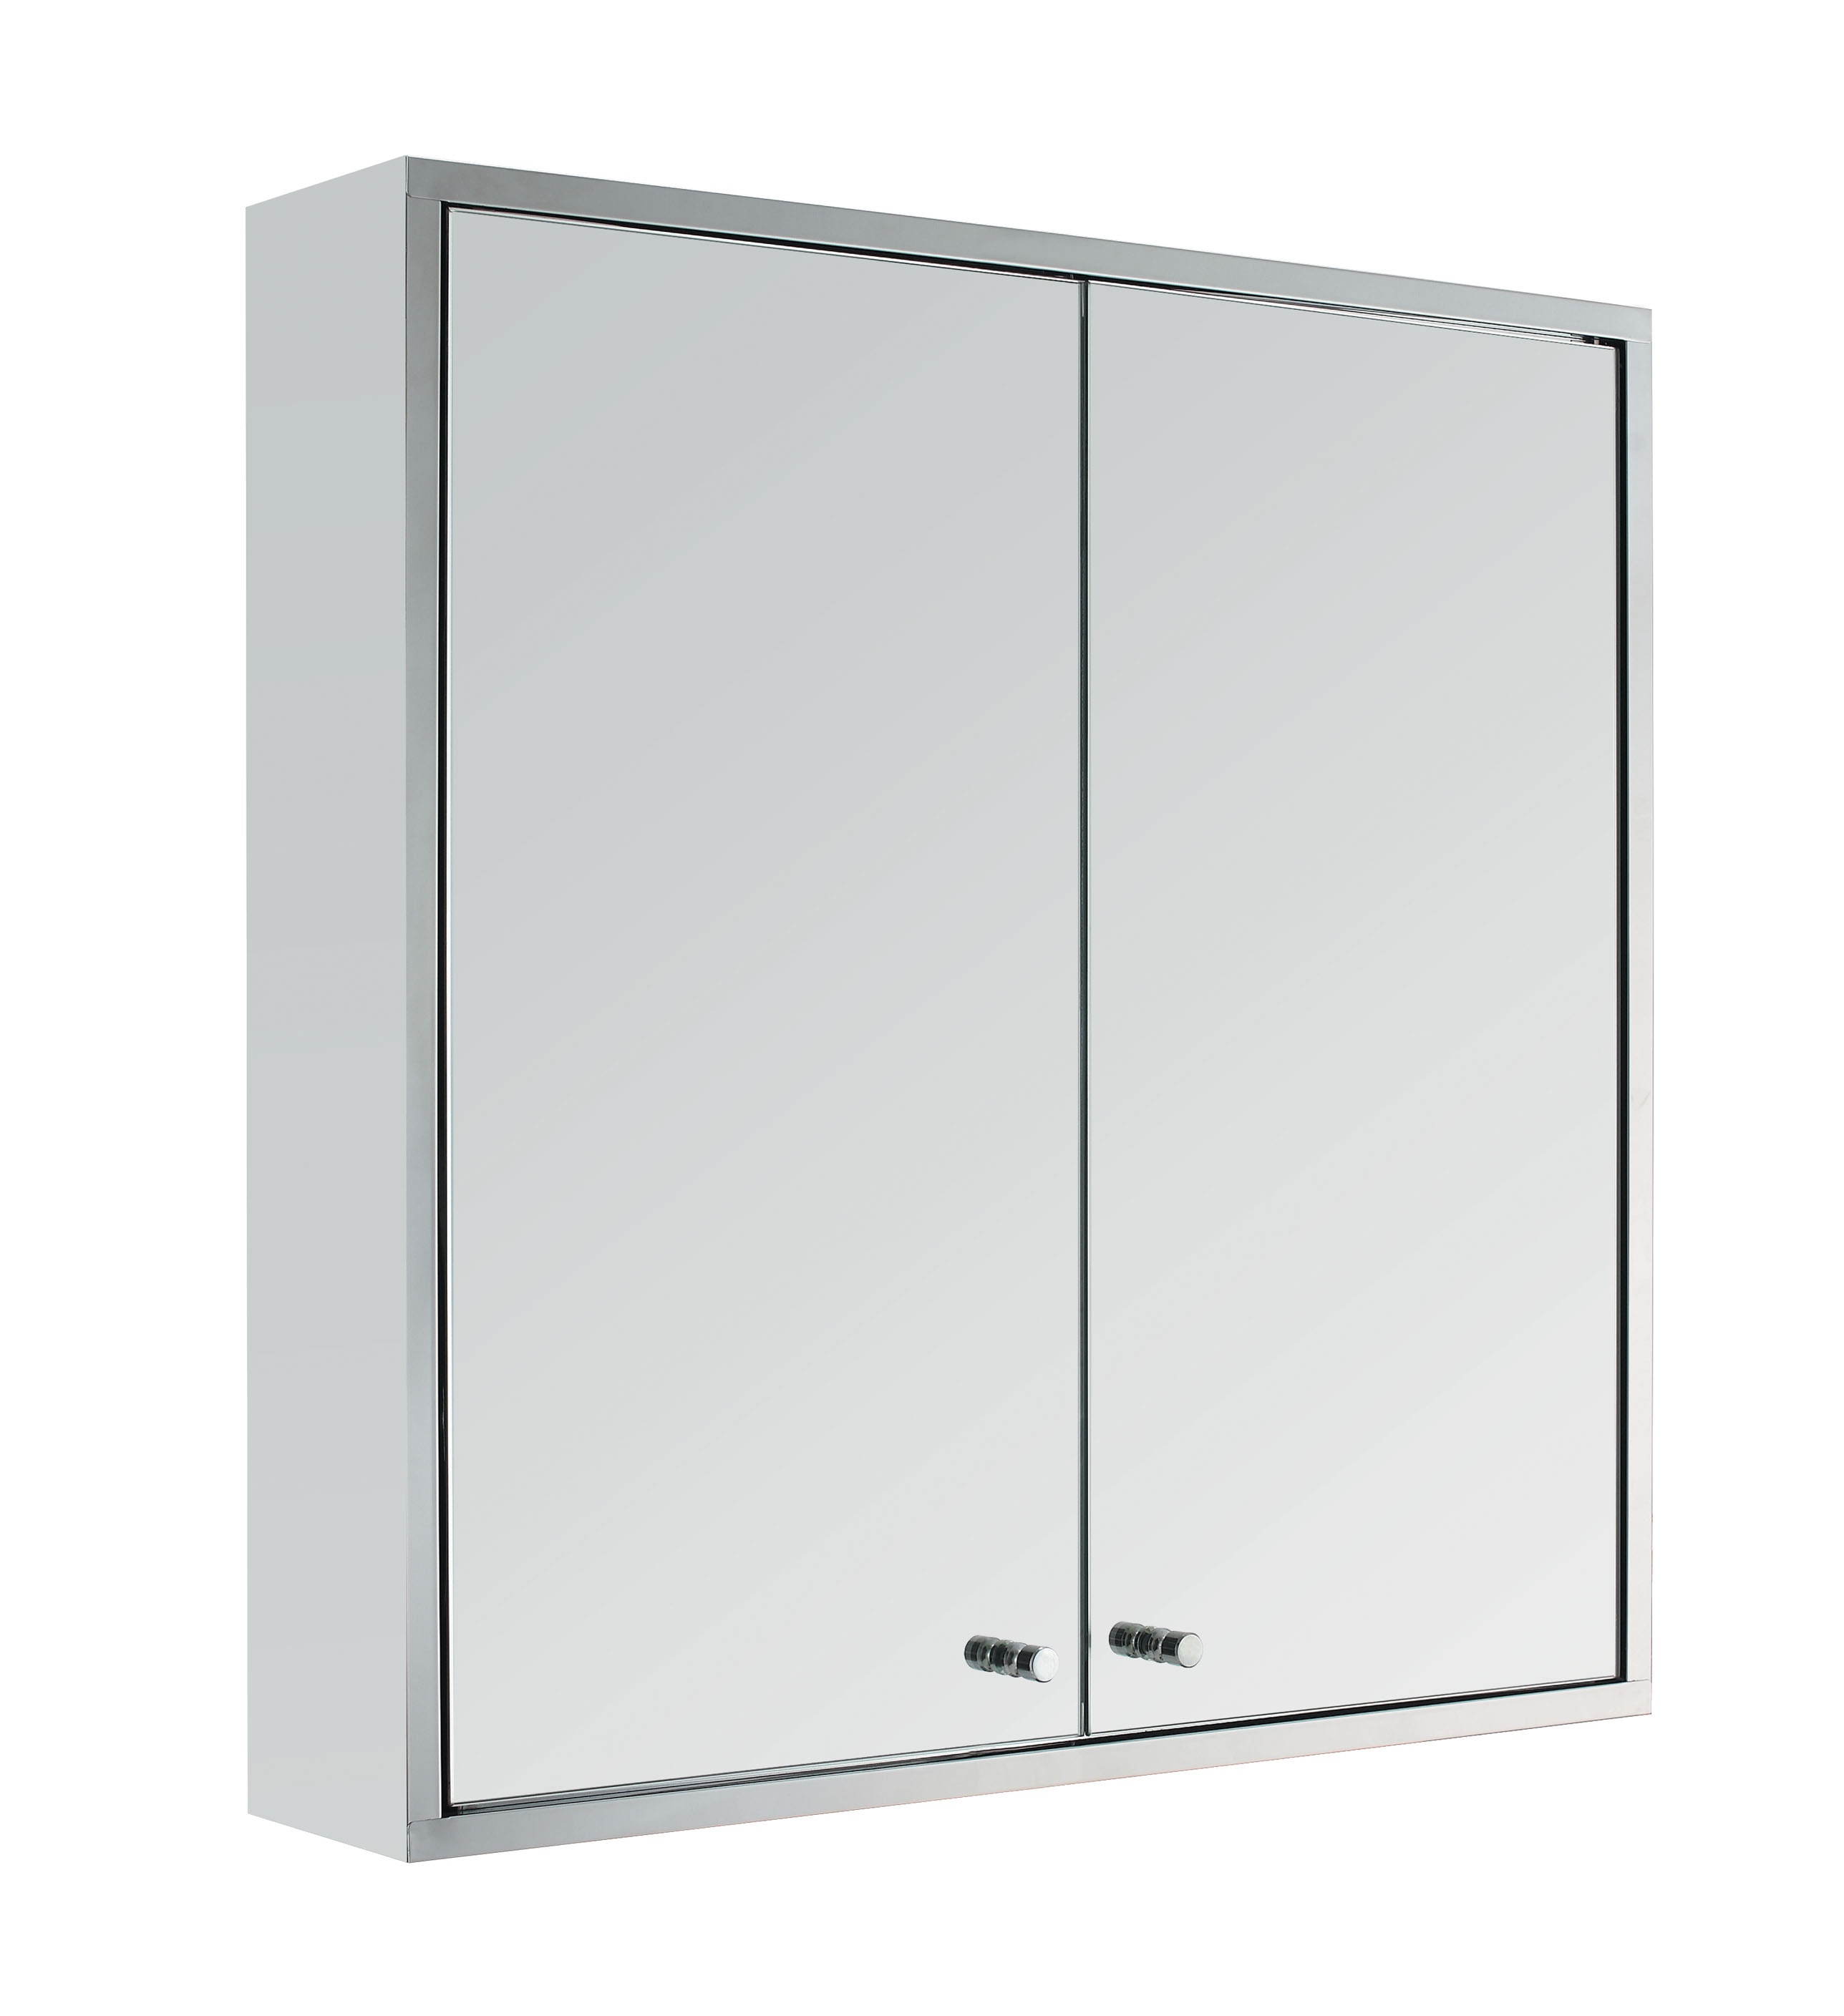 Bathroom corner wall cabinets - Sentinel Stainless Steel Wall Mount Bathroom Cabinet With Shelf Storage Cupboard Mirror